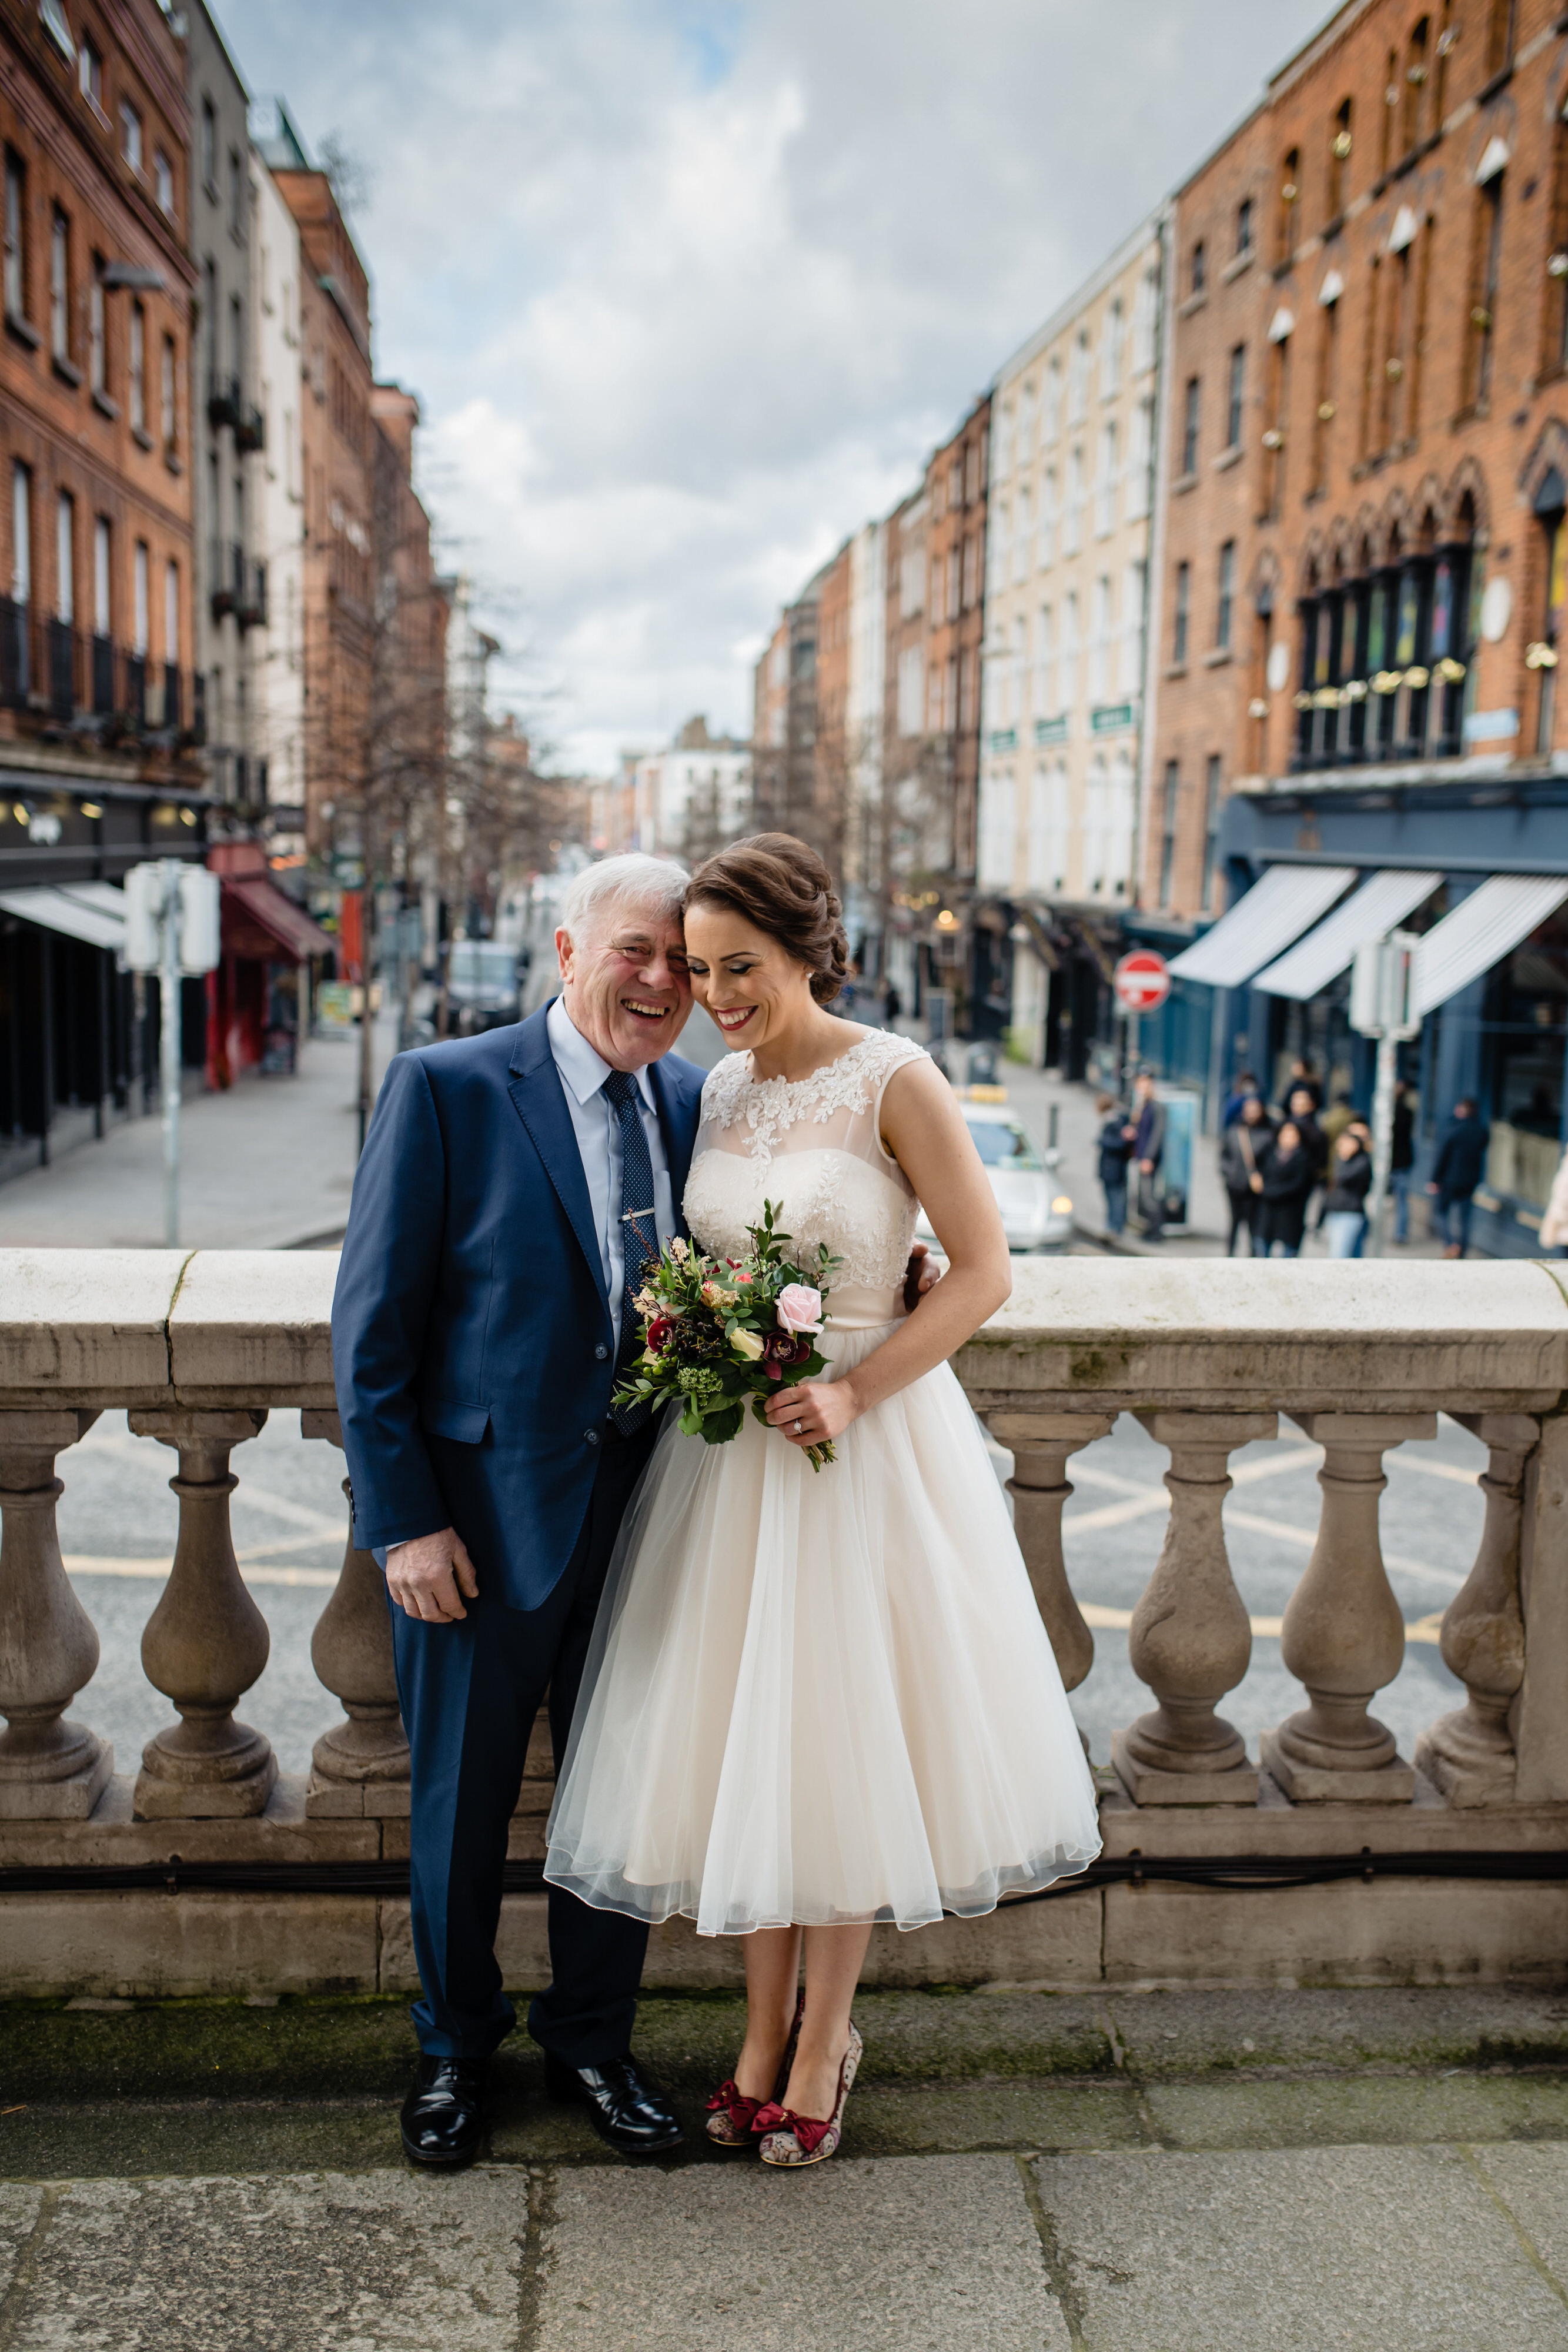 Bride and father at balustrade - photo by John Gillooley